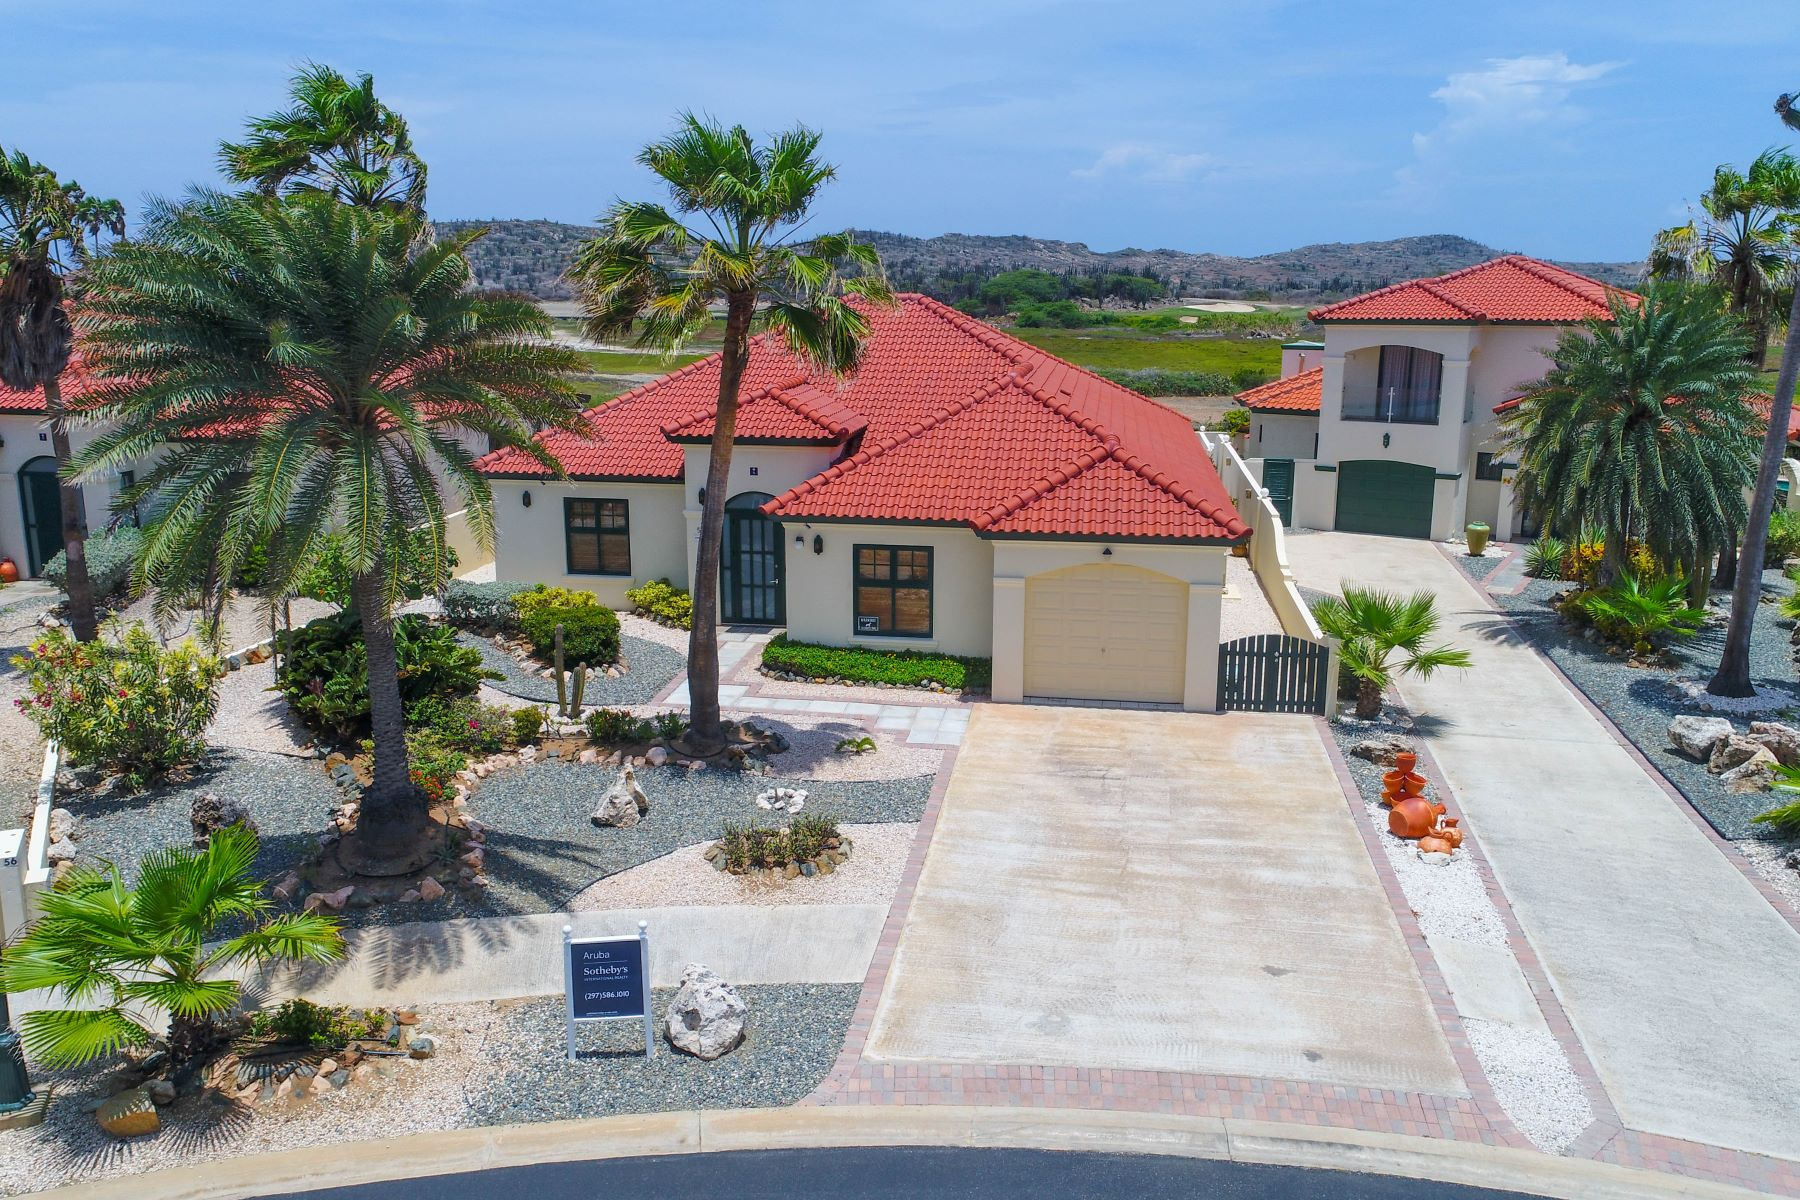 Single Family Home for Sale at Poinciana Villa Malmok, Aruba